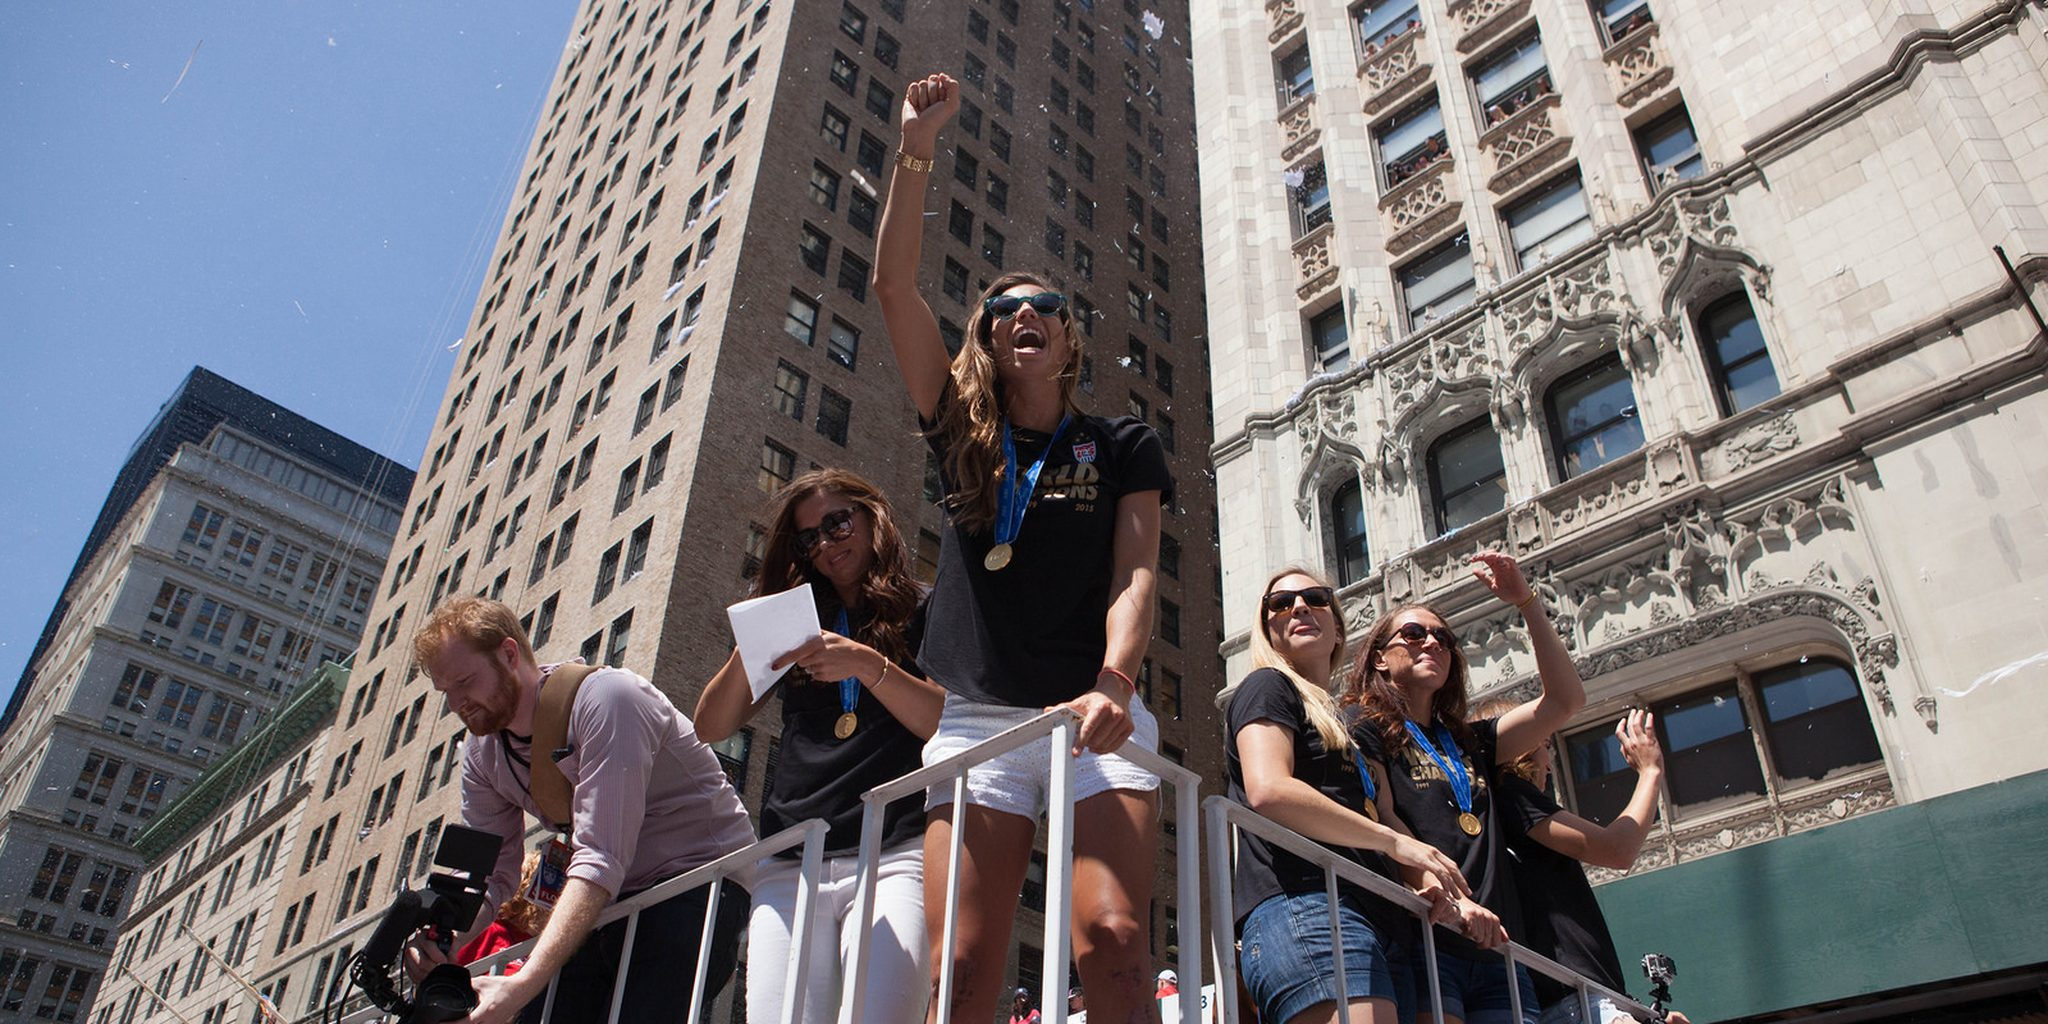 U.S. Women's National Team (USWNT) World Cup 2015 ticker tape parade